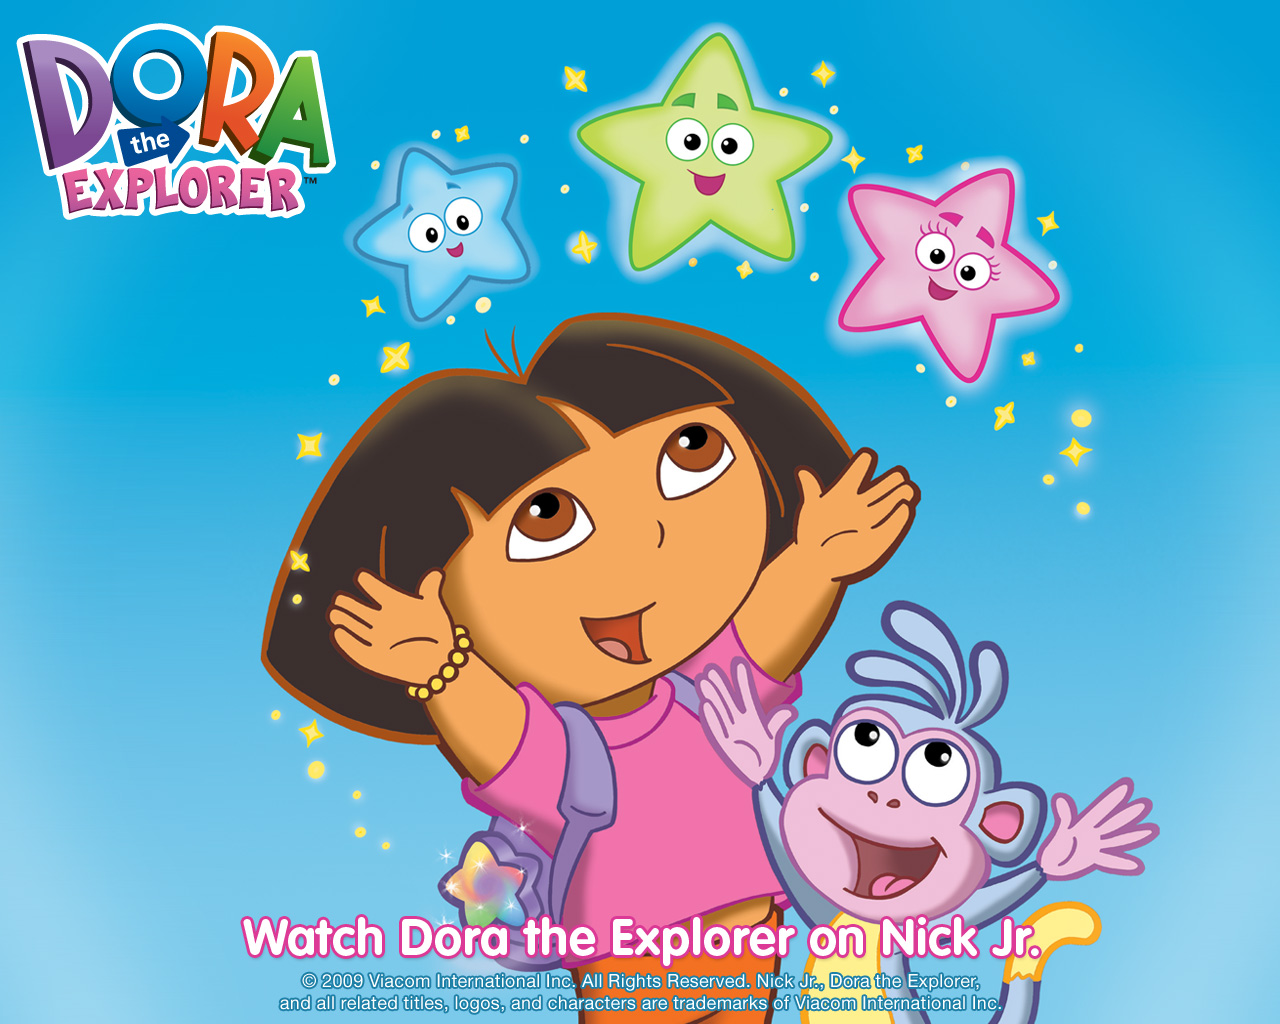 Dora The Explorer Wallpaper 1280x1024